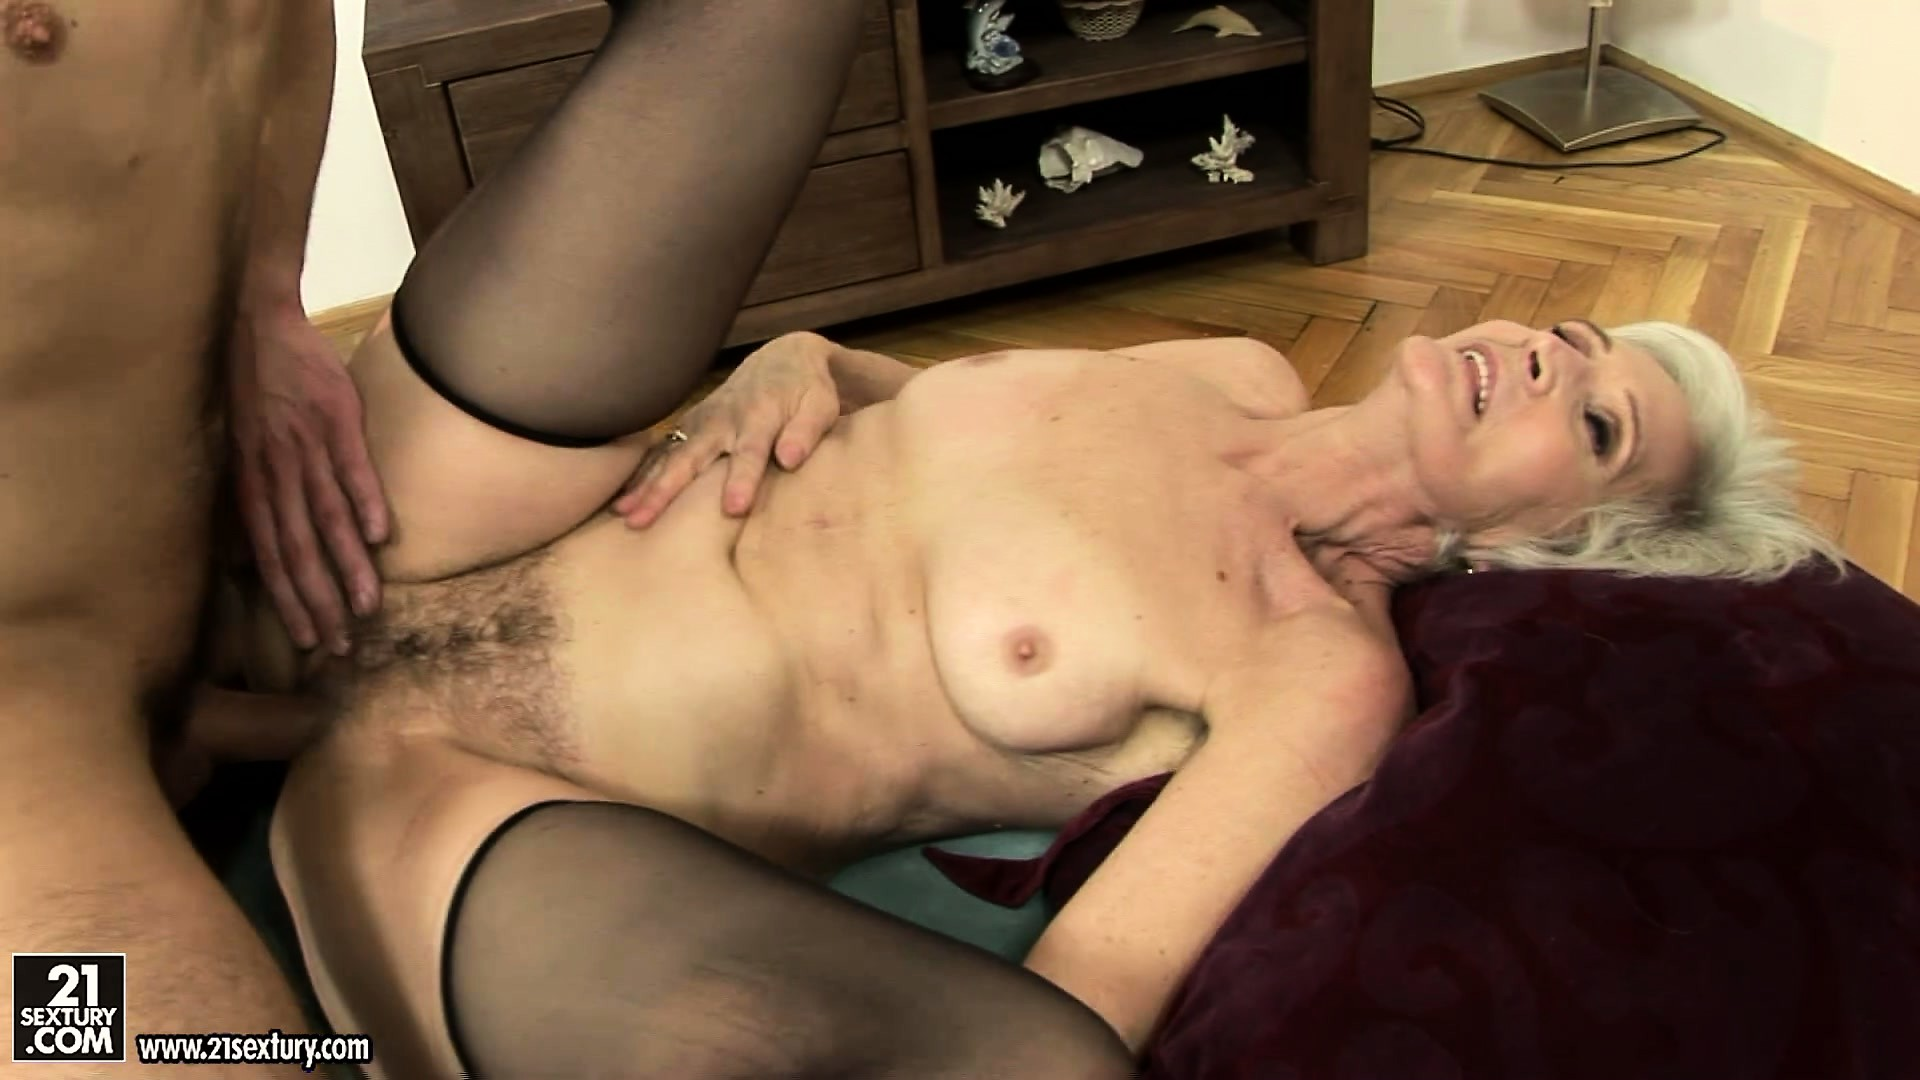 Porno Video of Cyber-granny Gets Banged And Creamed In And On Her Mossy Bush